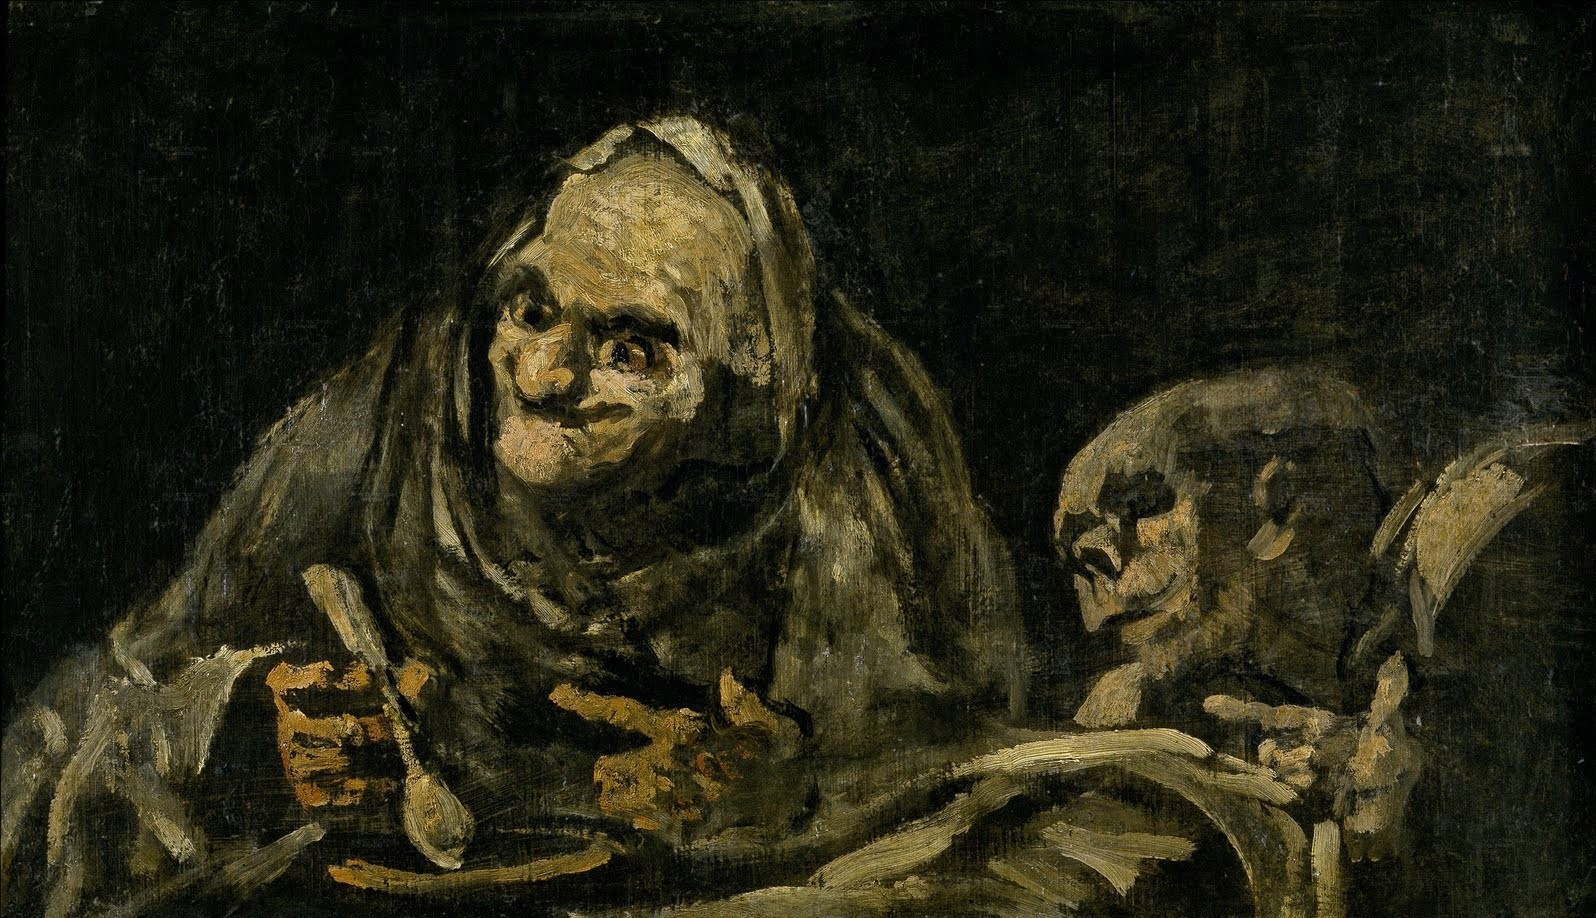 Old man with a horrible smile eating food